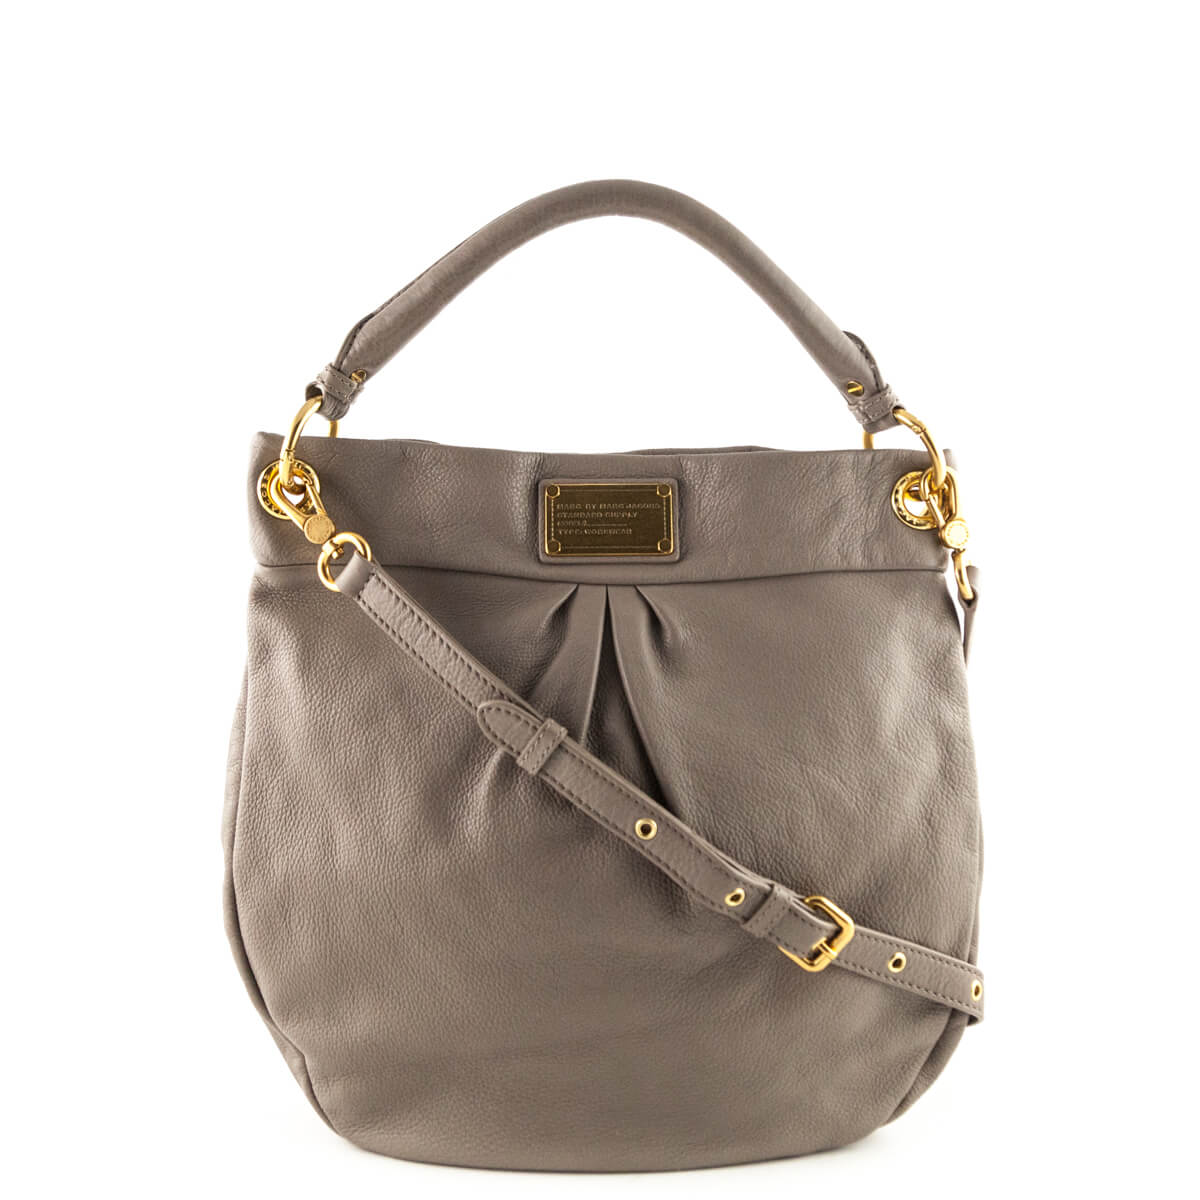 77f7ff709d16 Marc by Marc Jacobs Zinc Classic Q Hillier Hobo - LOVE that BAG - Preowned  Authentic ...